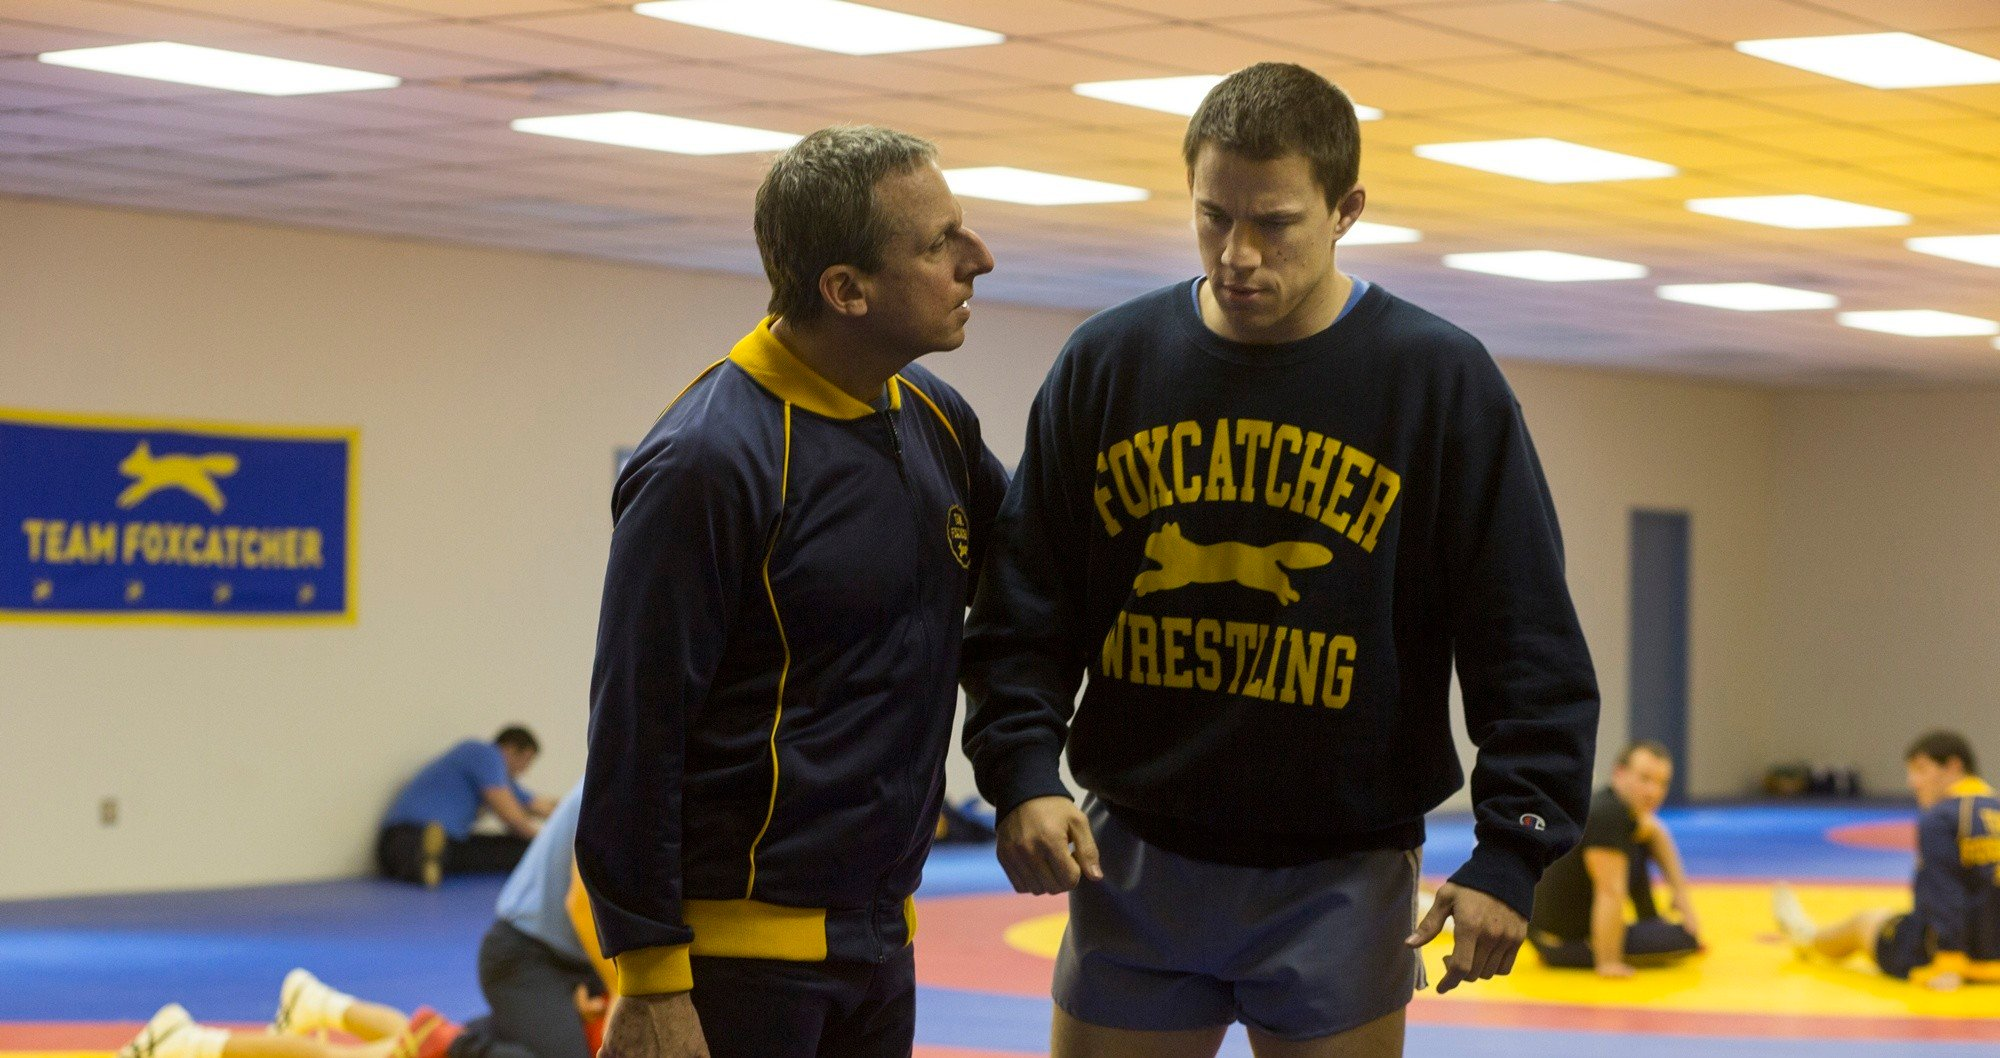 Foxcatcher - Channing Tatum and Steve Carell